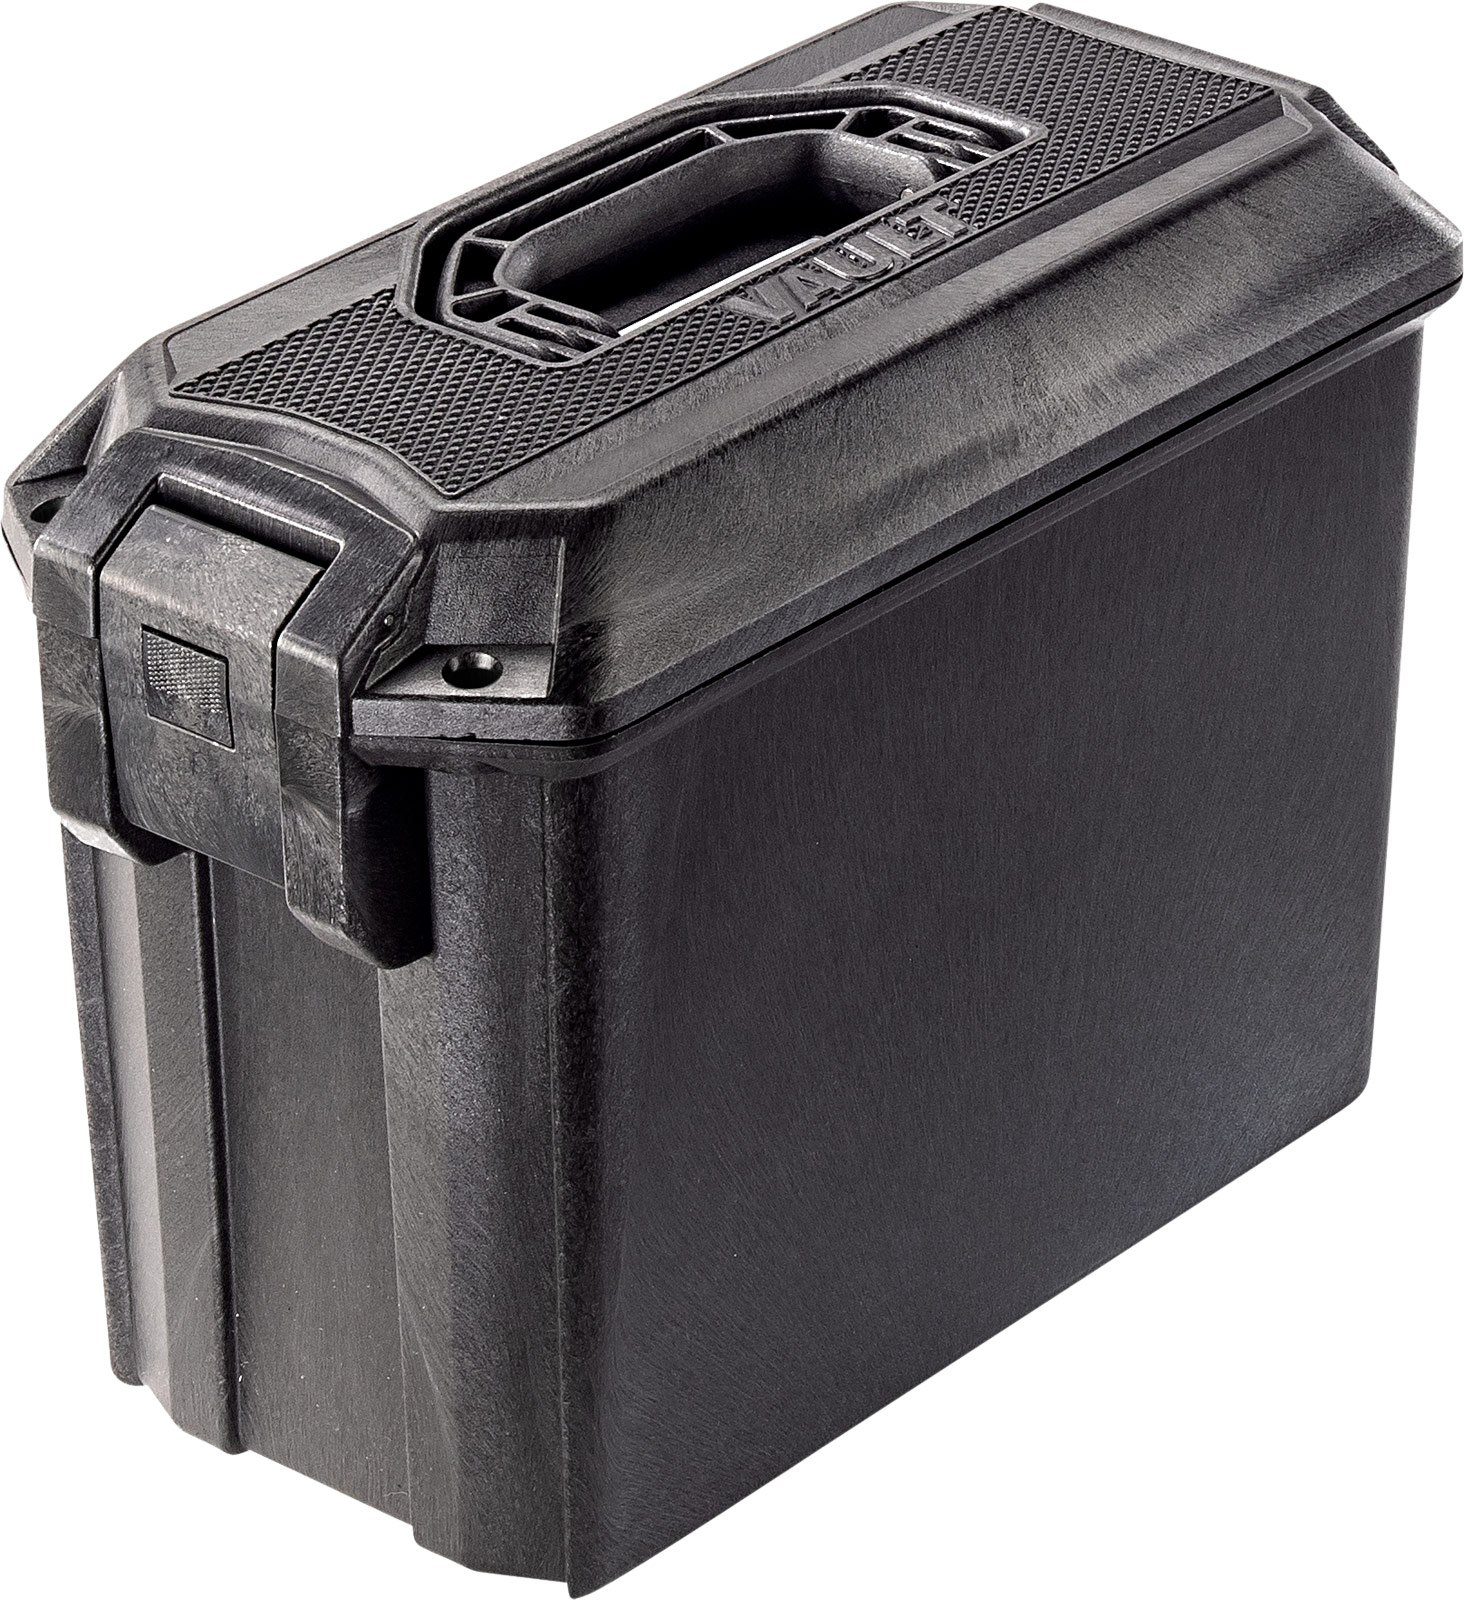 buy pelican vault v250 shop top loader case